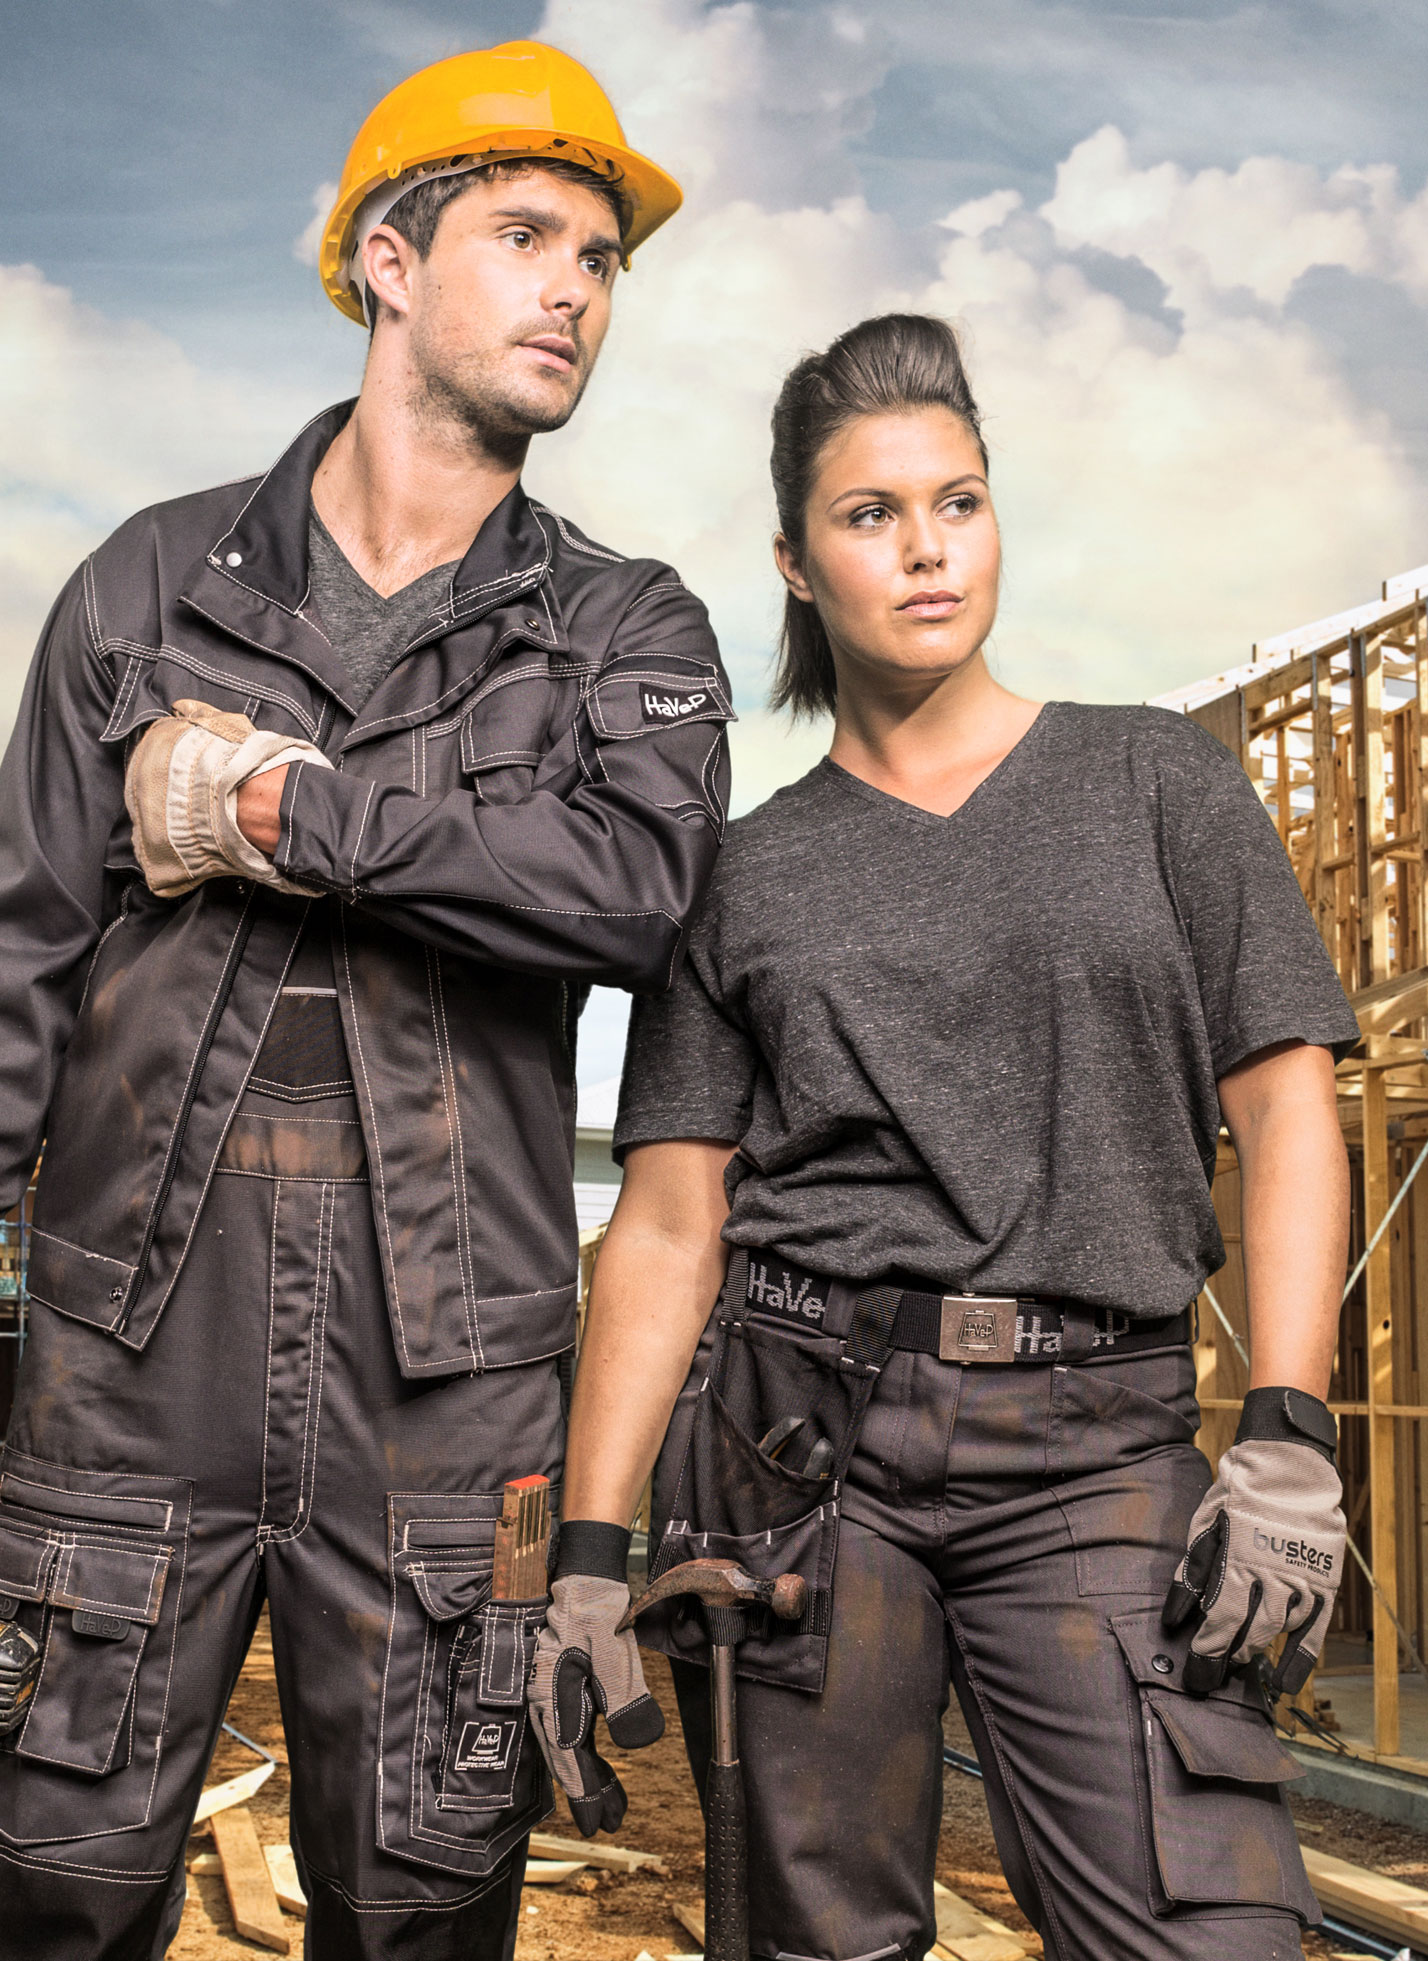 Worry-free workwear by Wijnands